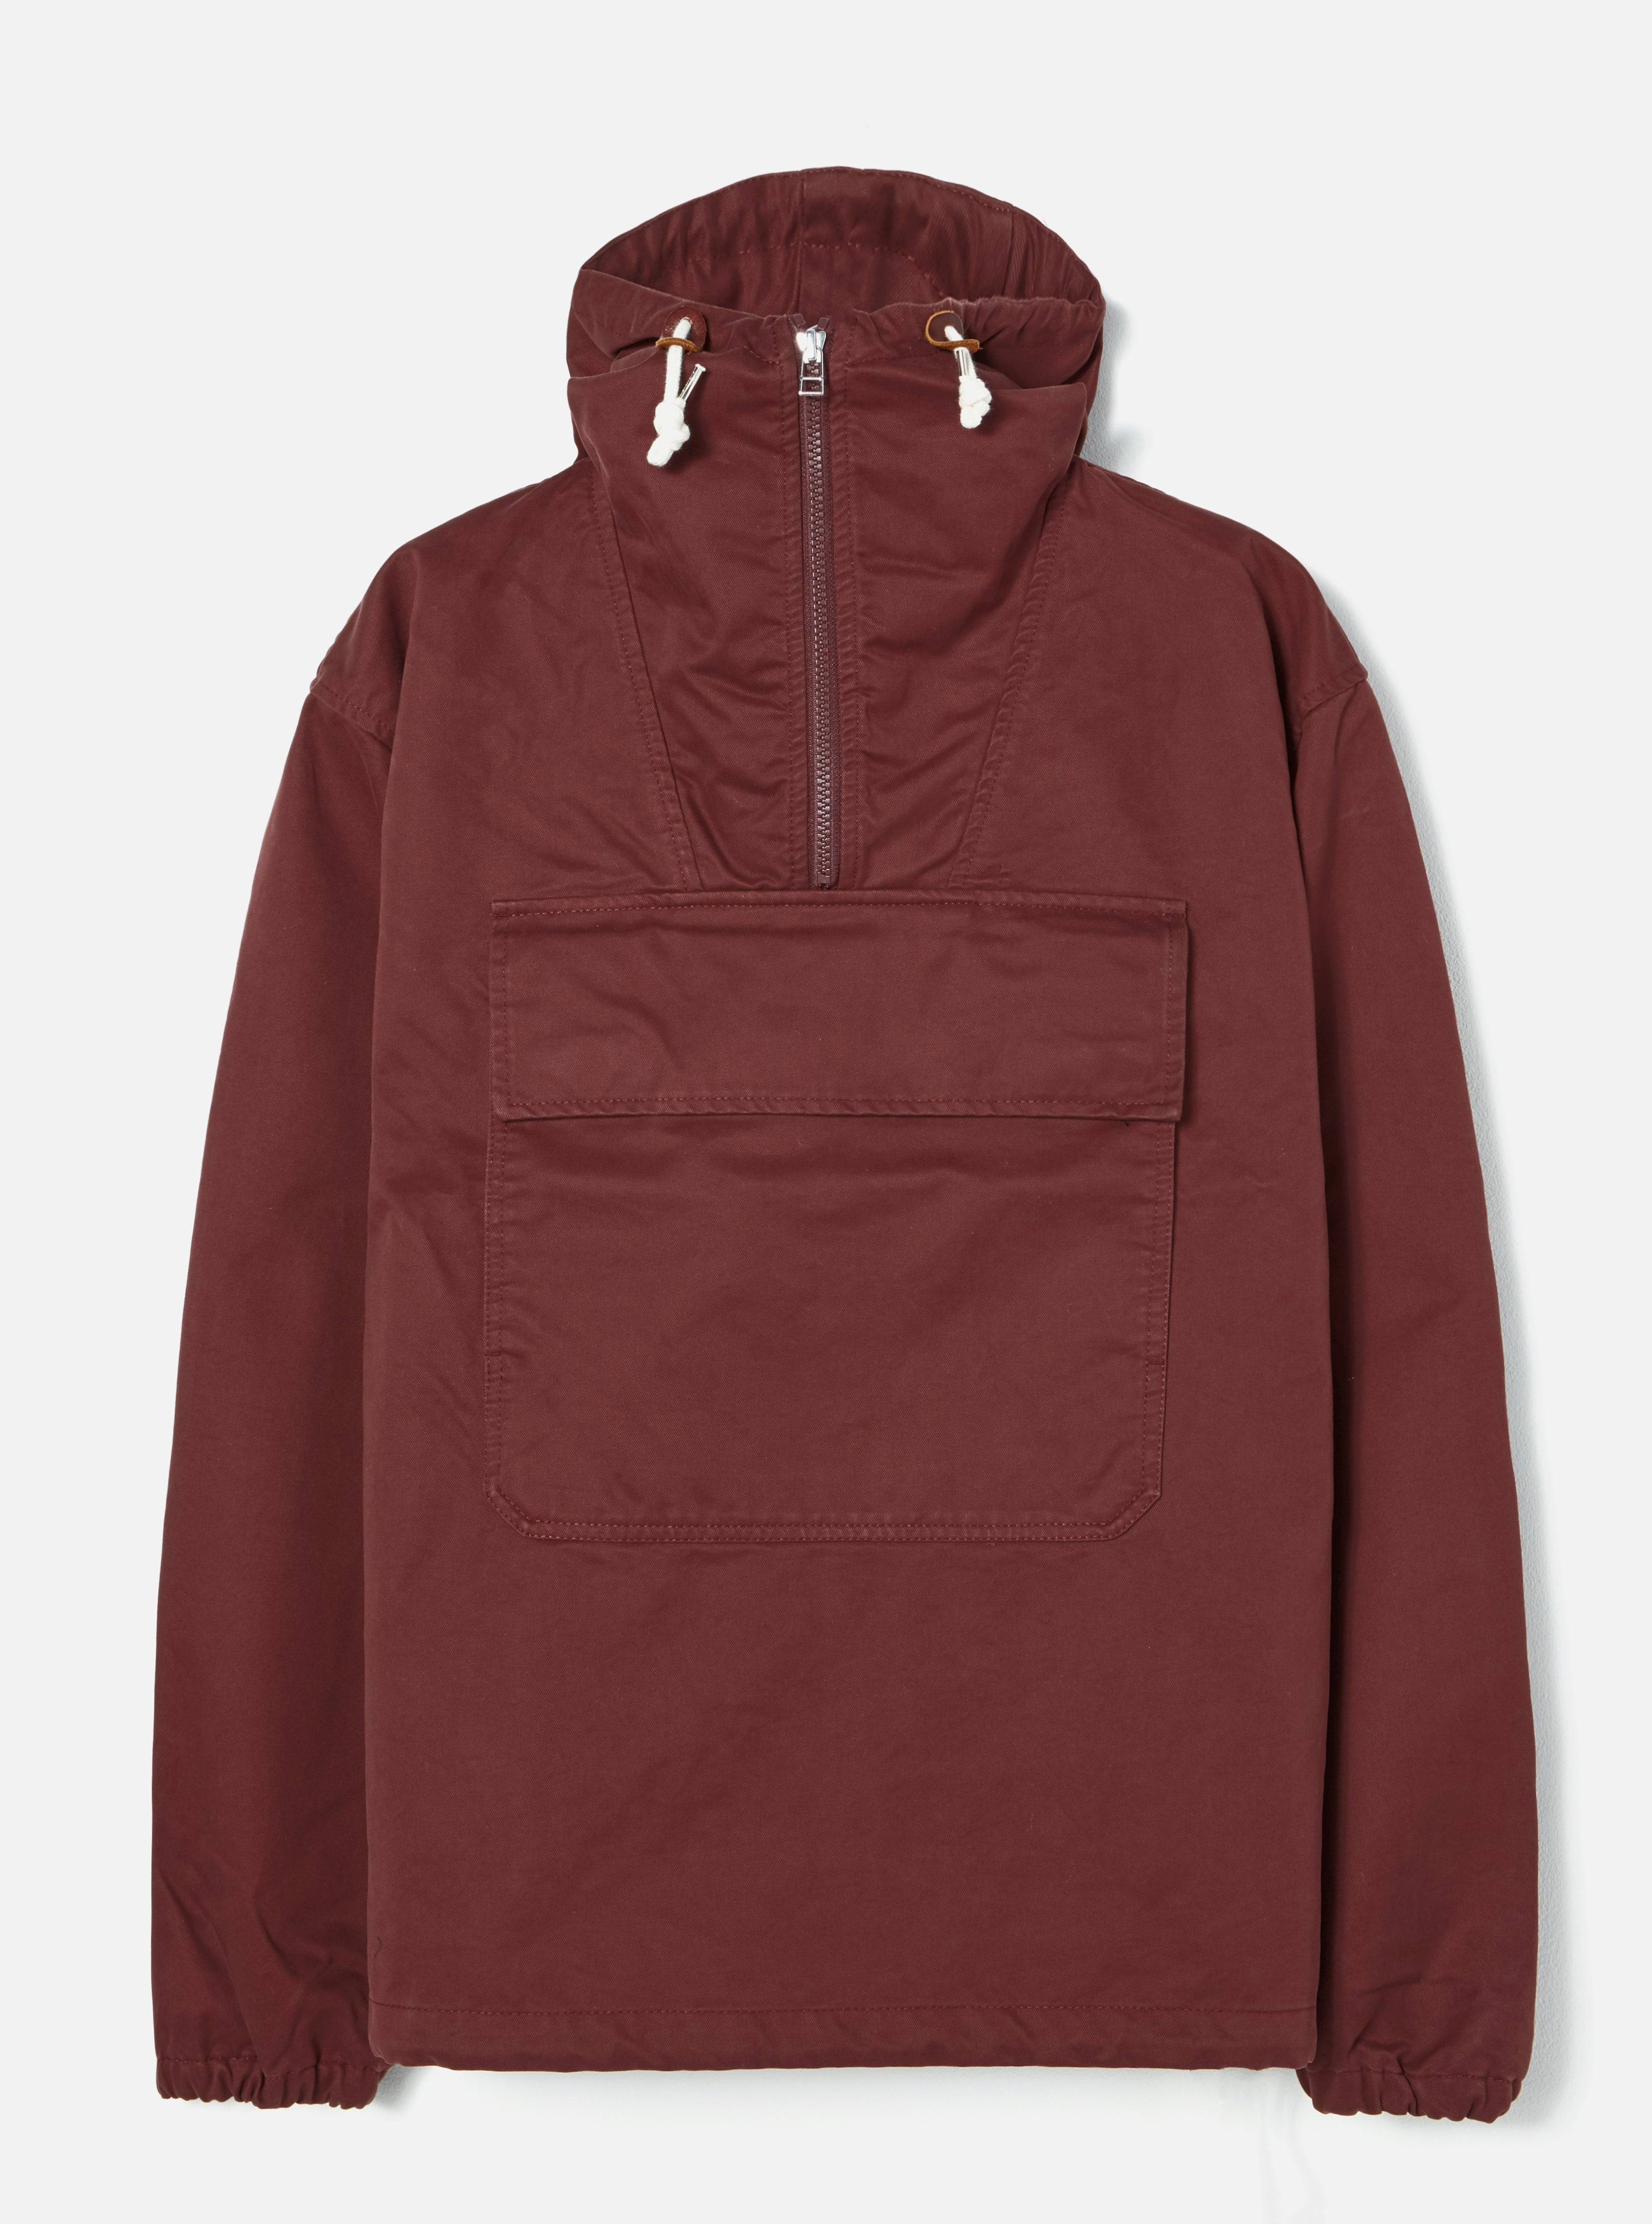 Universal Works Anorak in Burgundy Rainproof Cotton